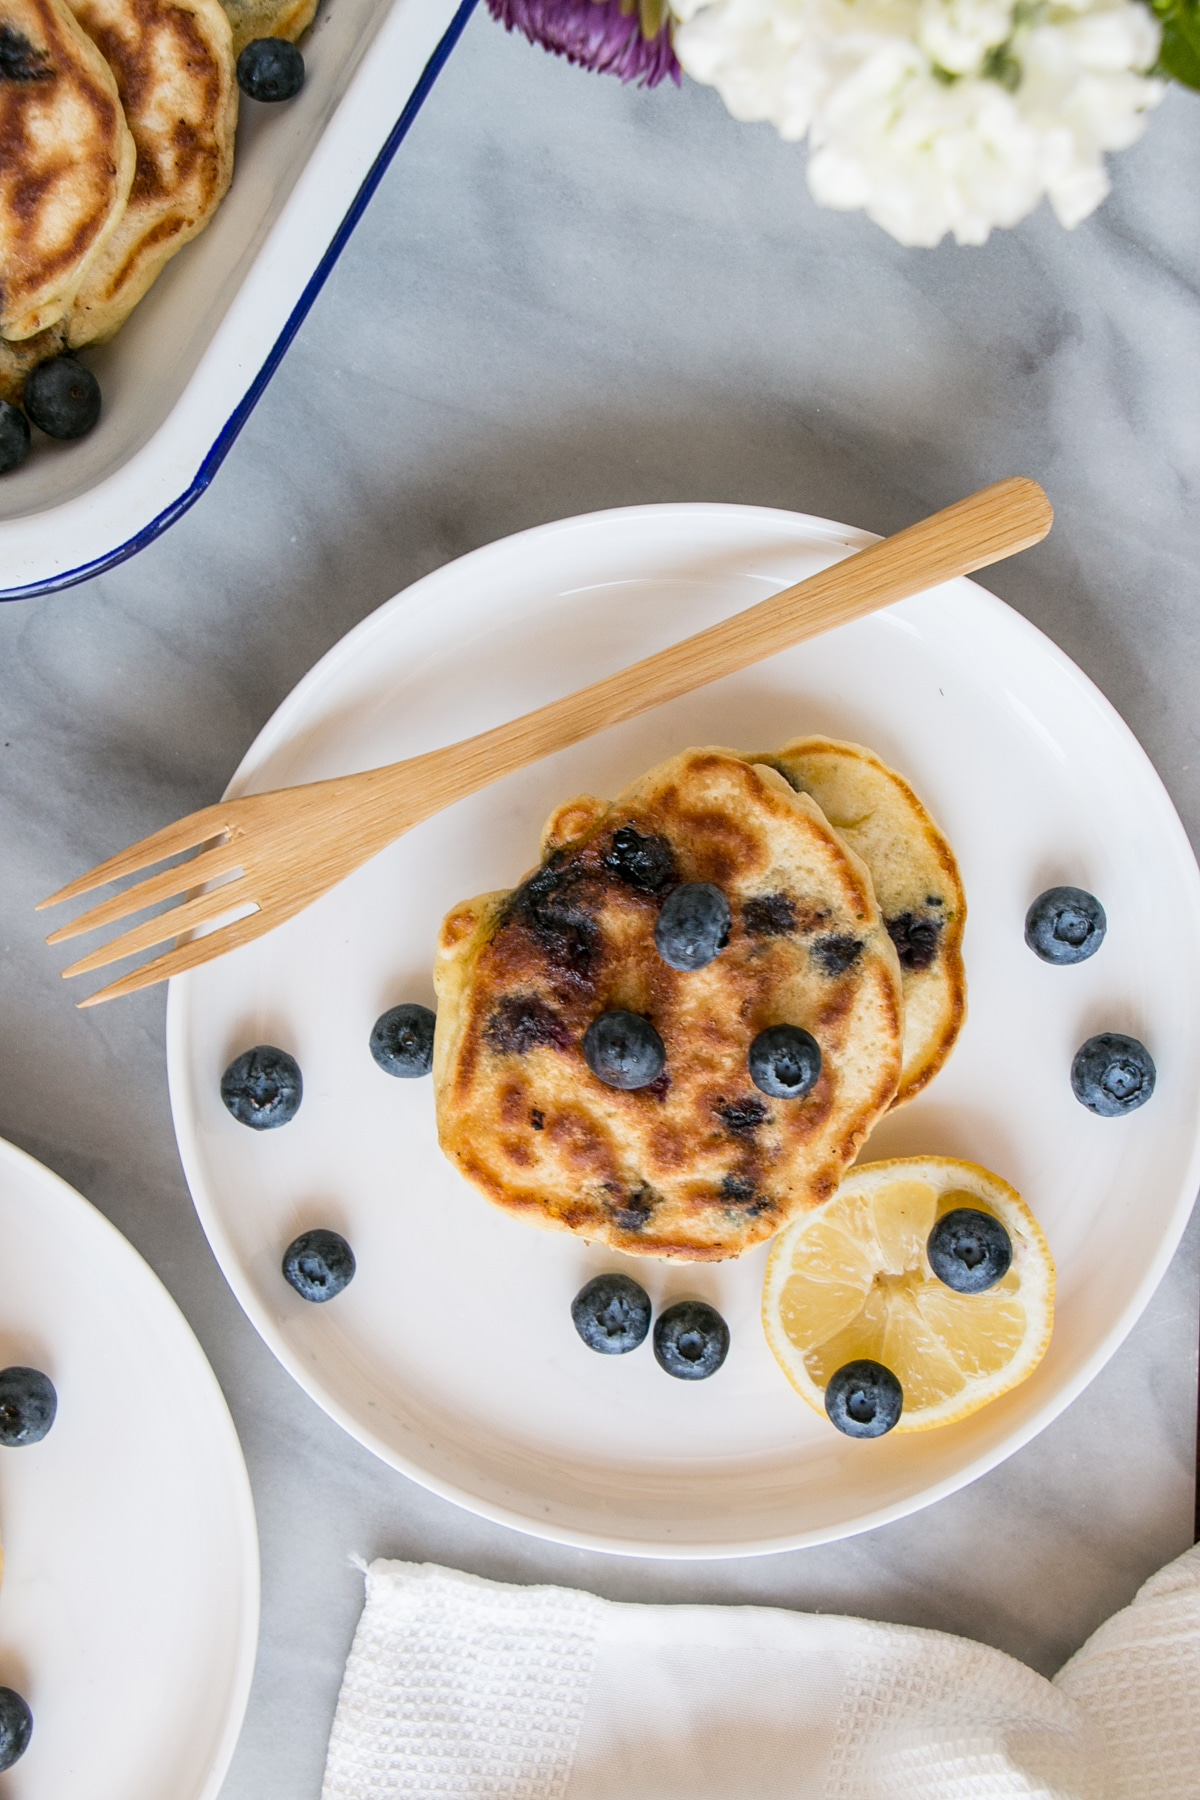 Top down shot of lemon blueberry pancakes with blueberries and a lemon slice on a white plate.